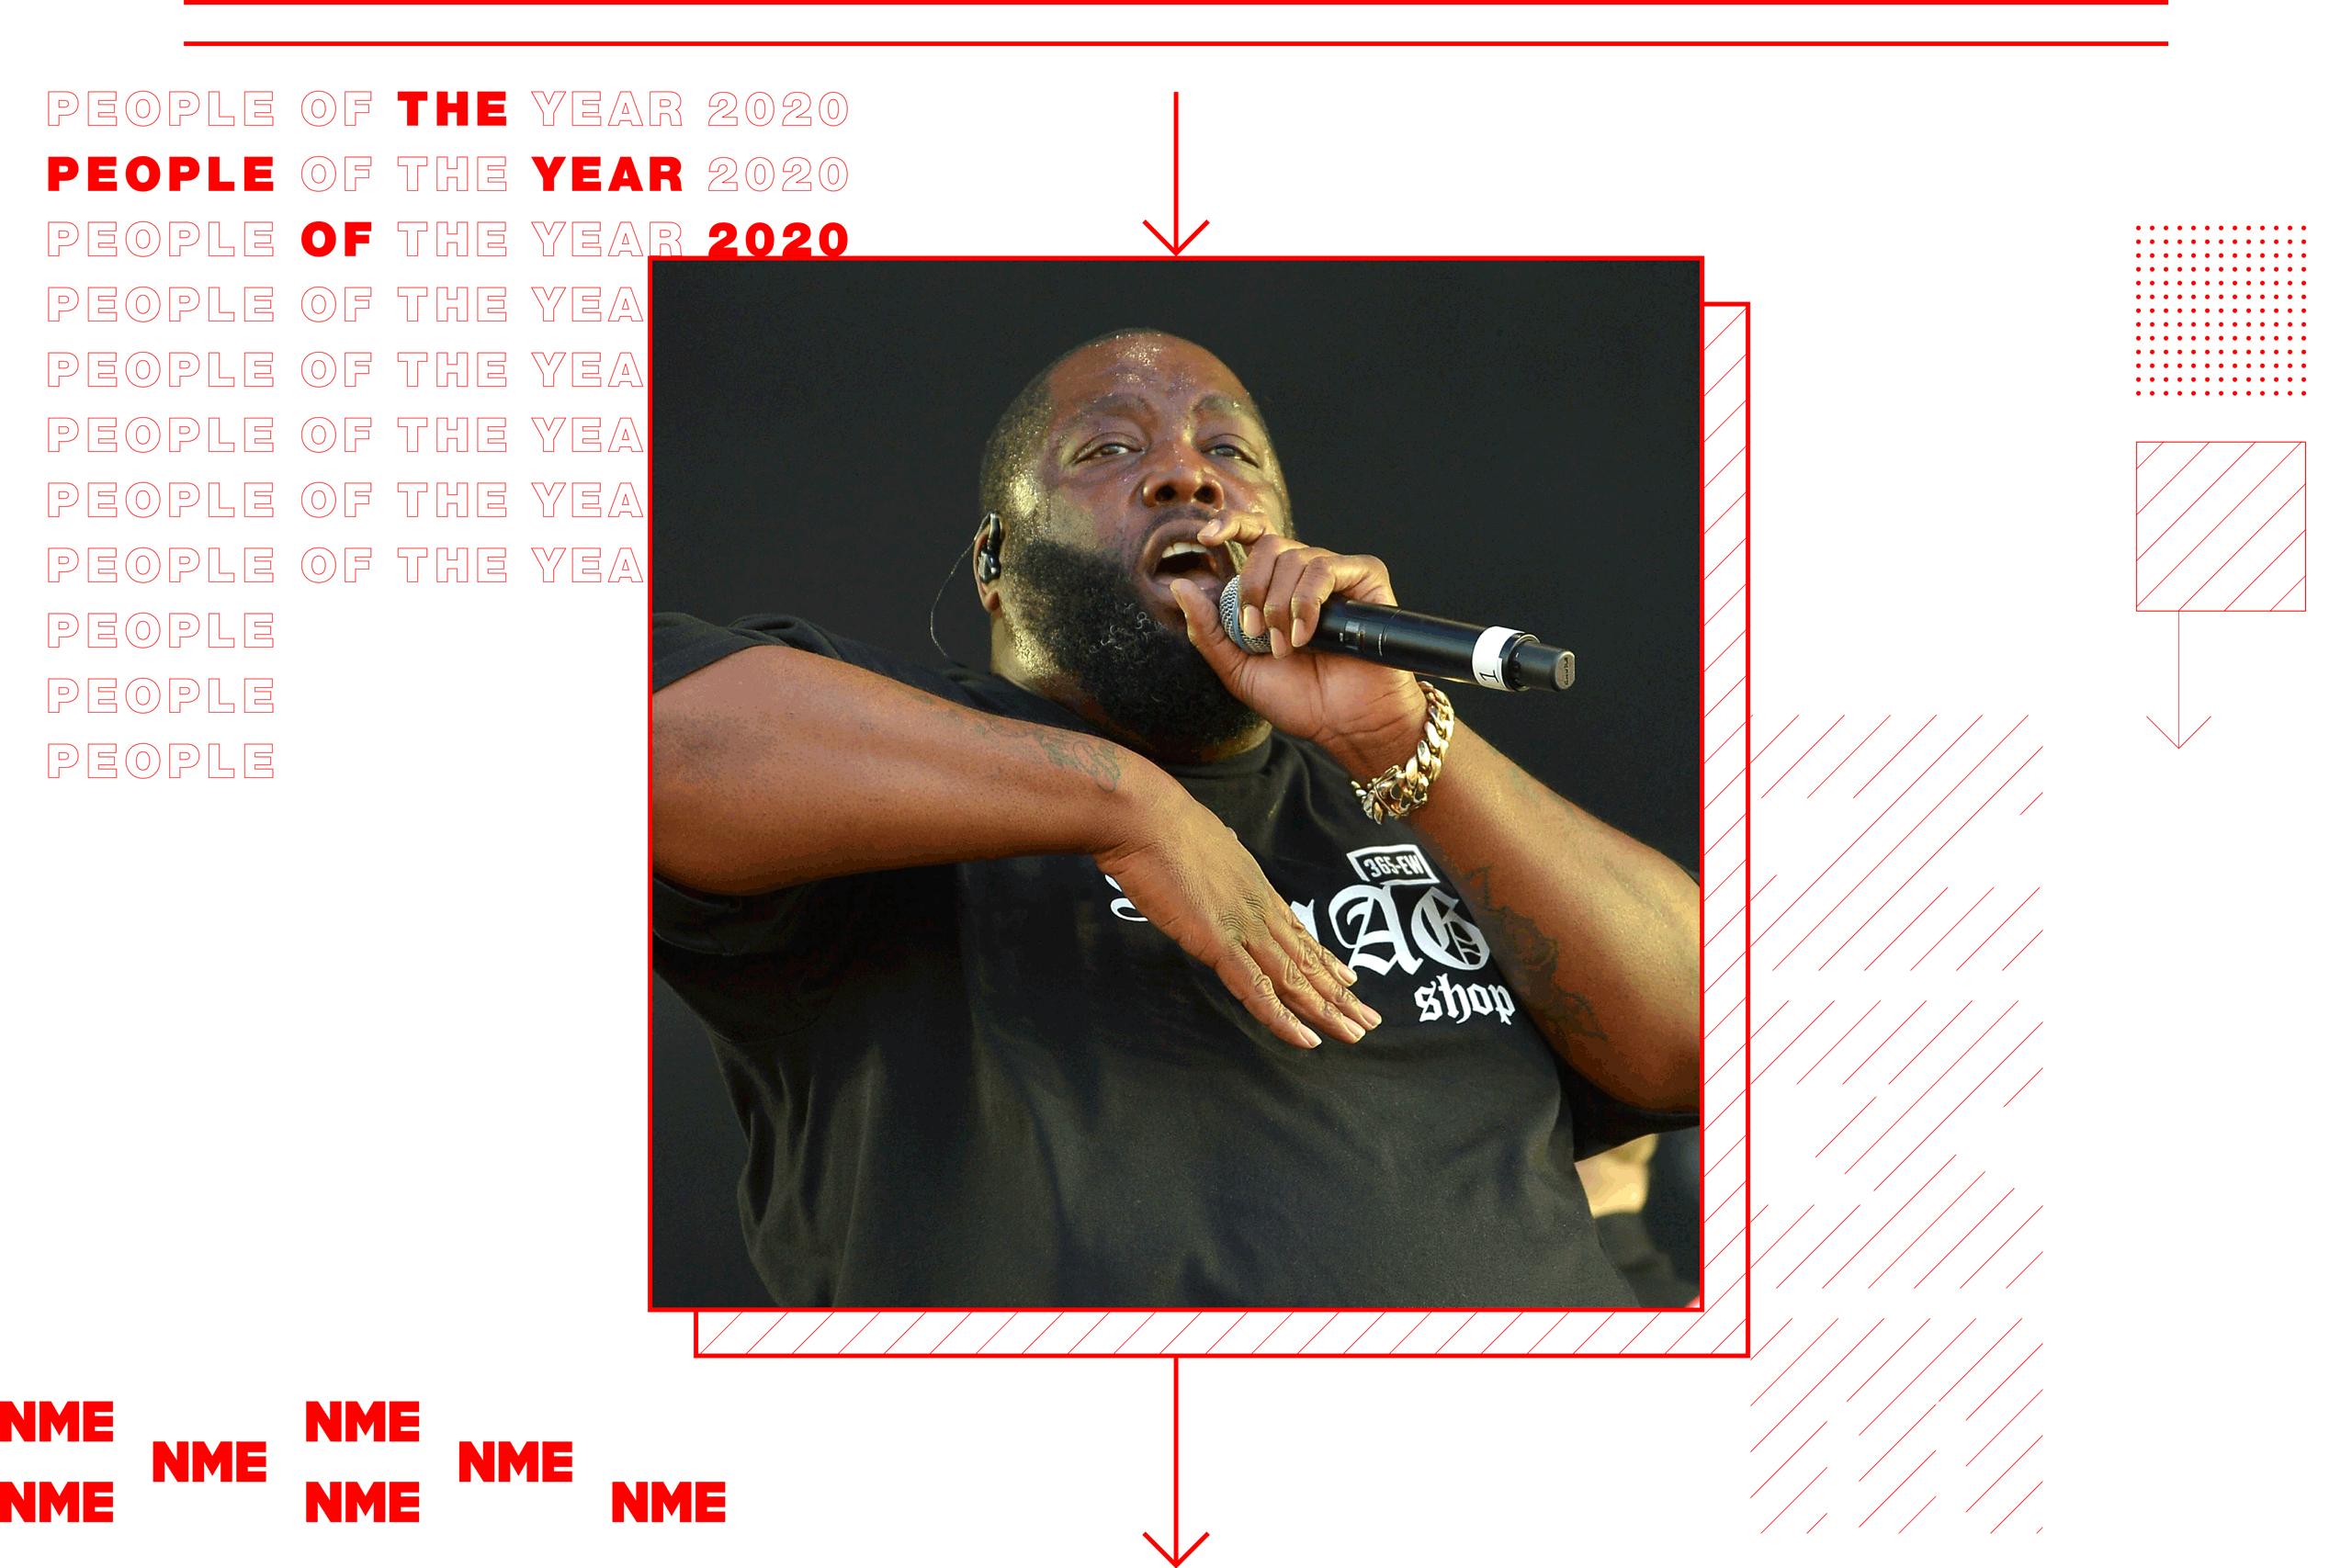 nme people of the year 2020 killer mike